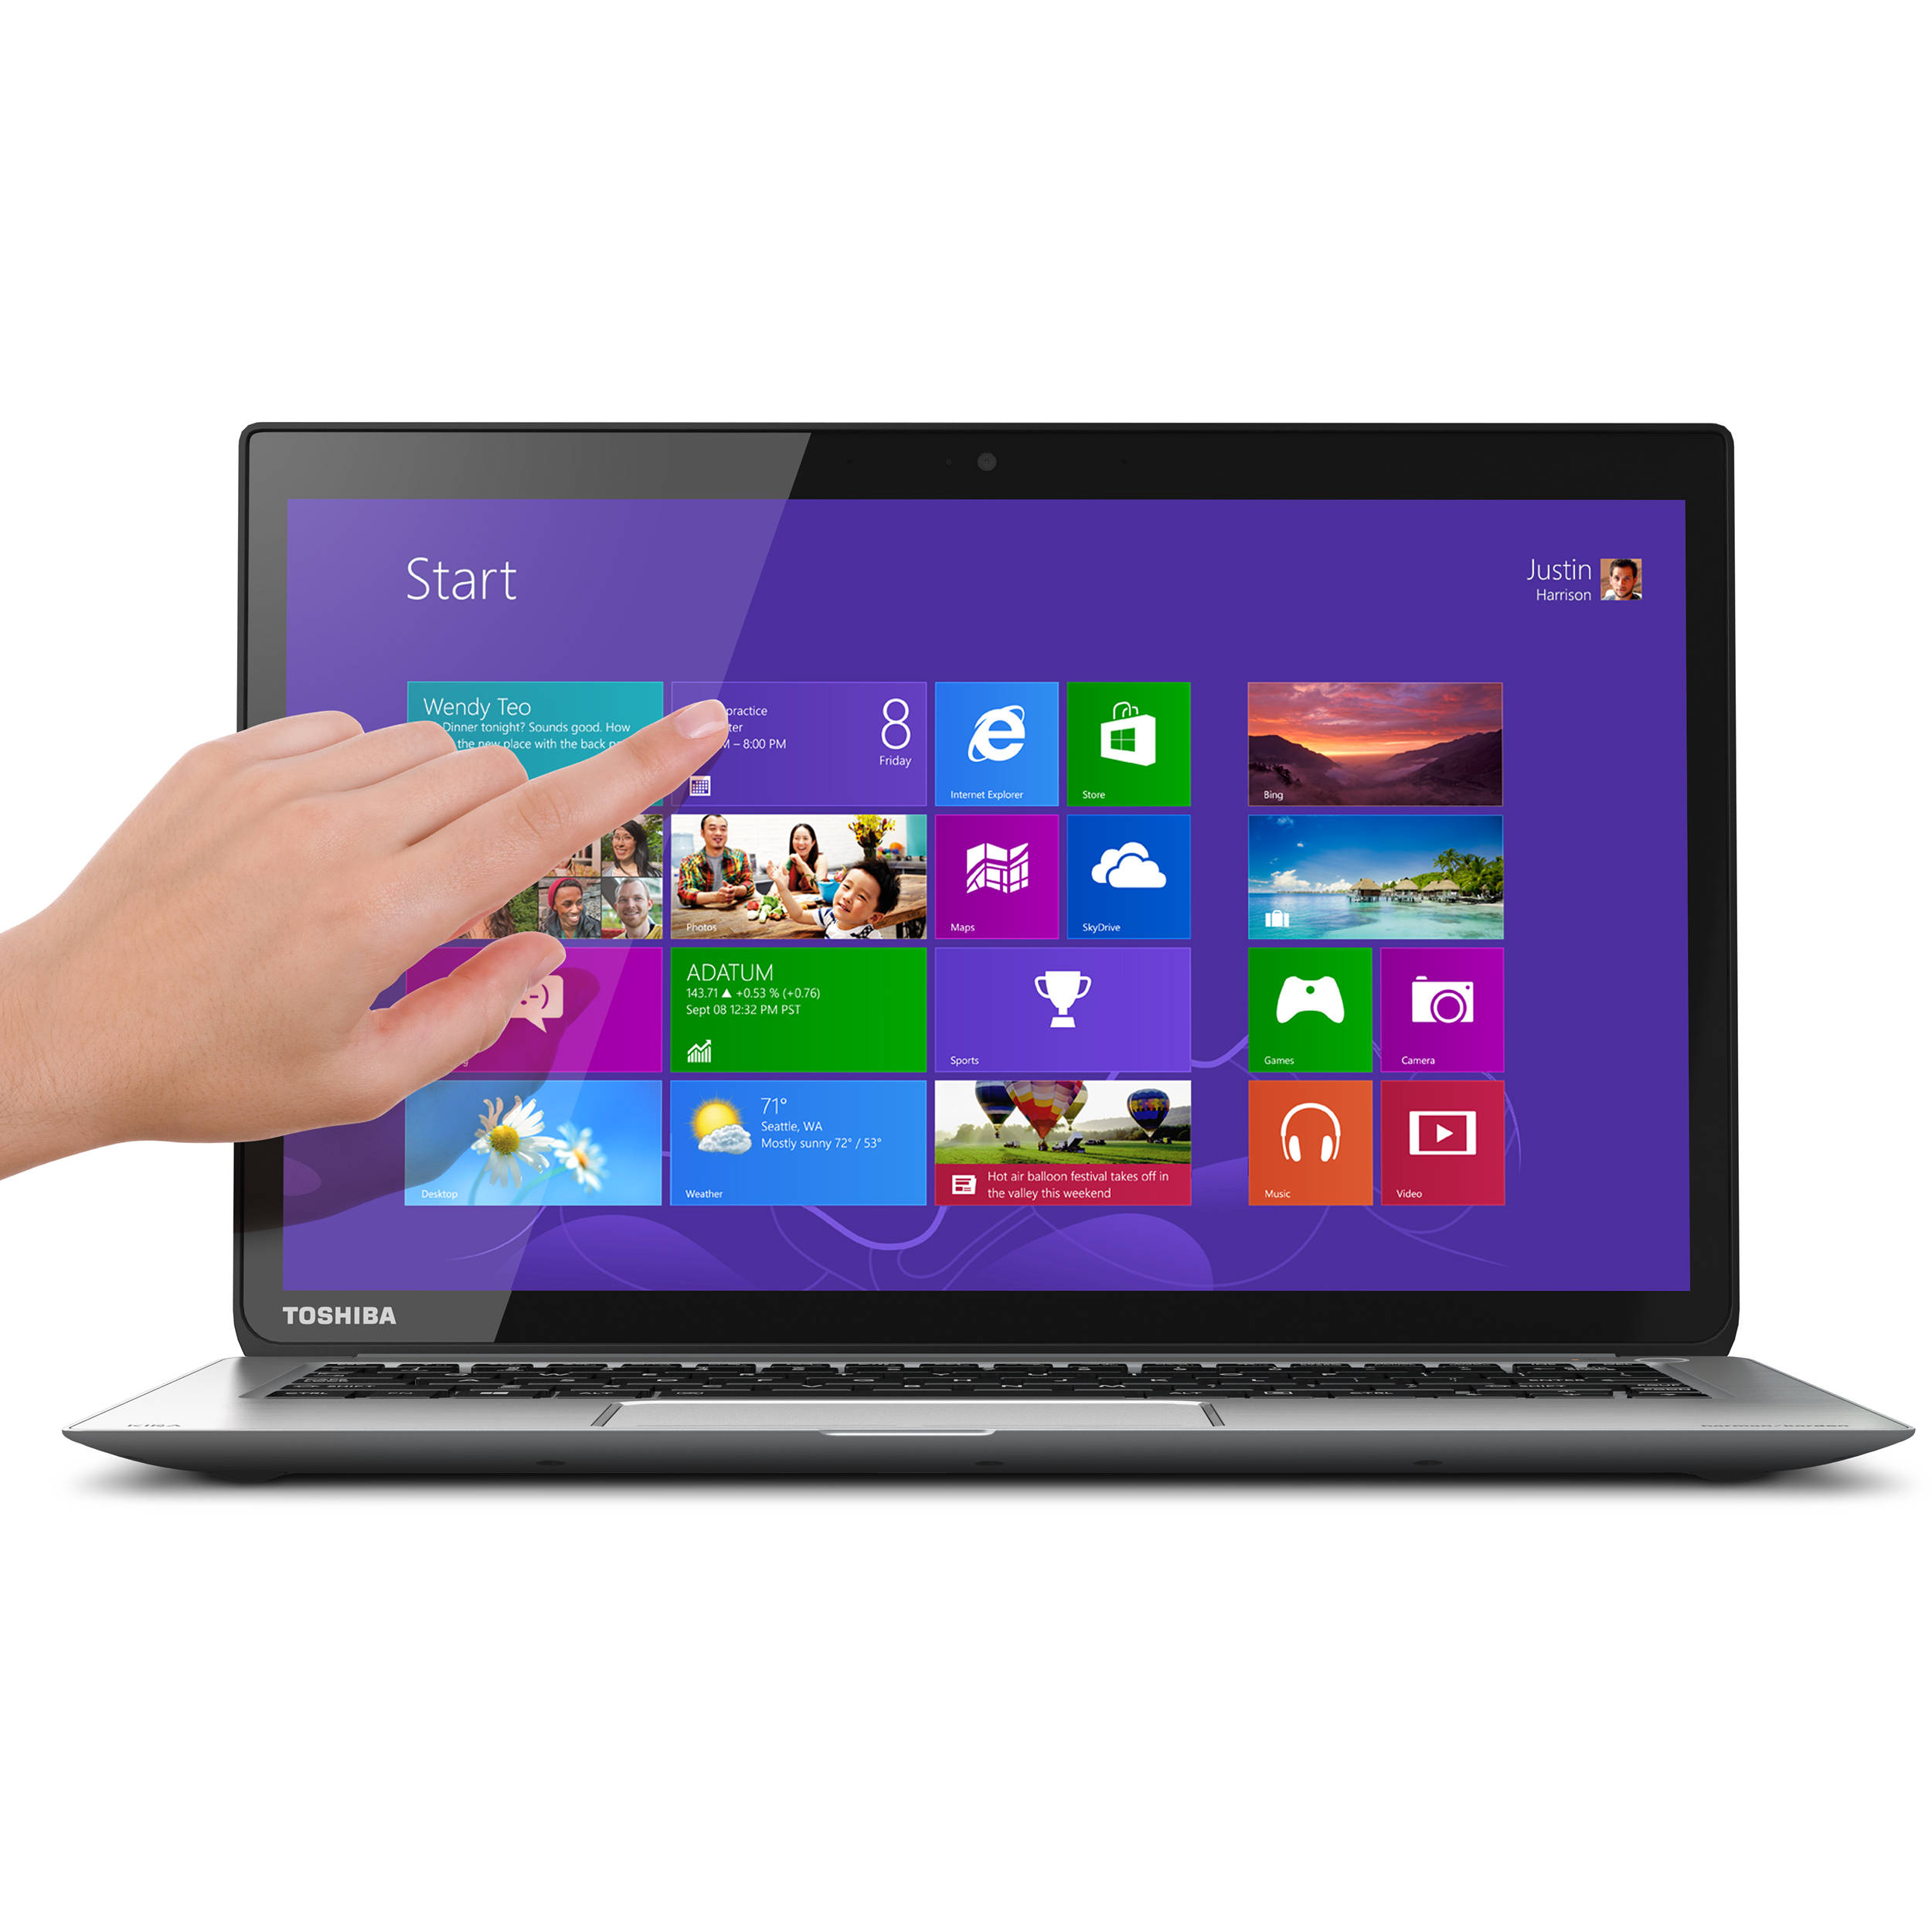 TOSHIBA KIRABOOK 13 I5S TOUCH DTS STUDIO SOUND WINDOWS 7 DRIVER DOWNLOAD